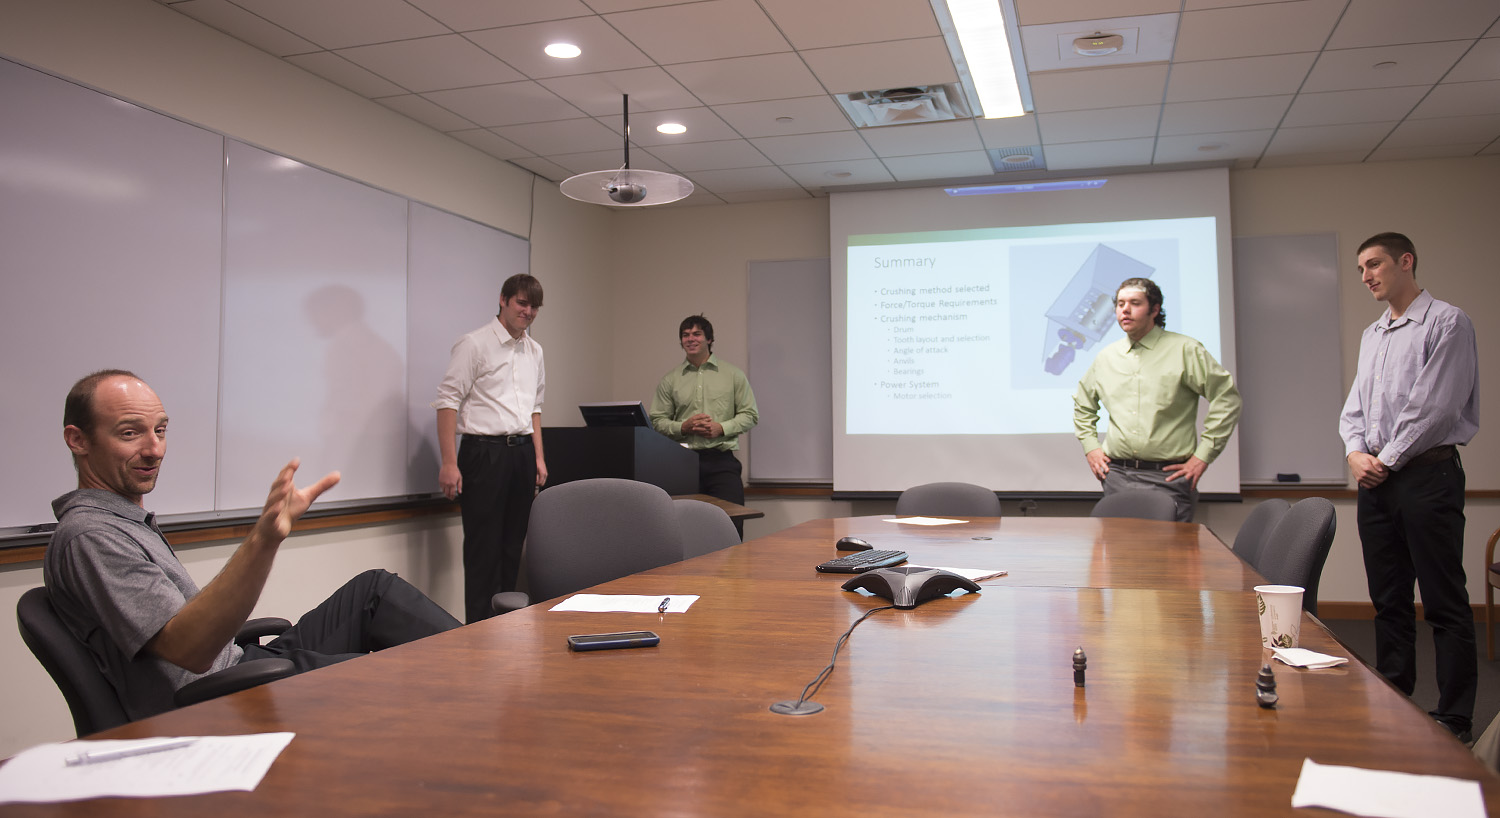 Engineering students giving presentation